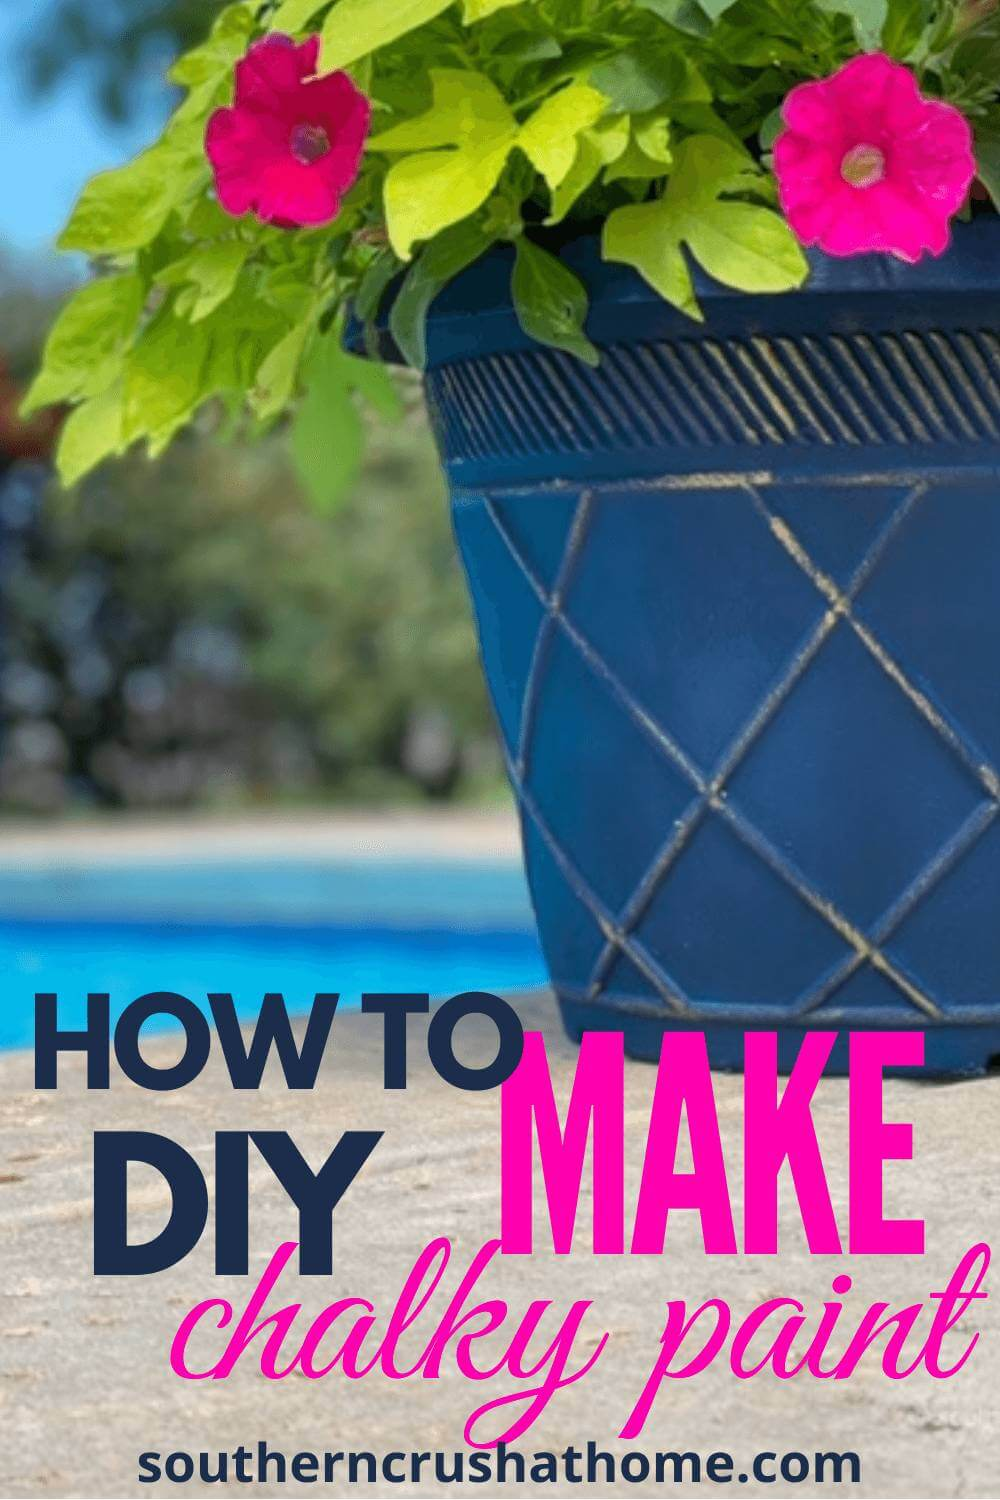 How to make DIY Chalky Paint